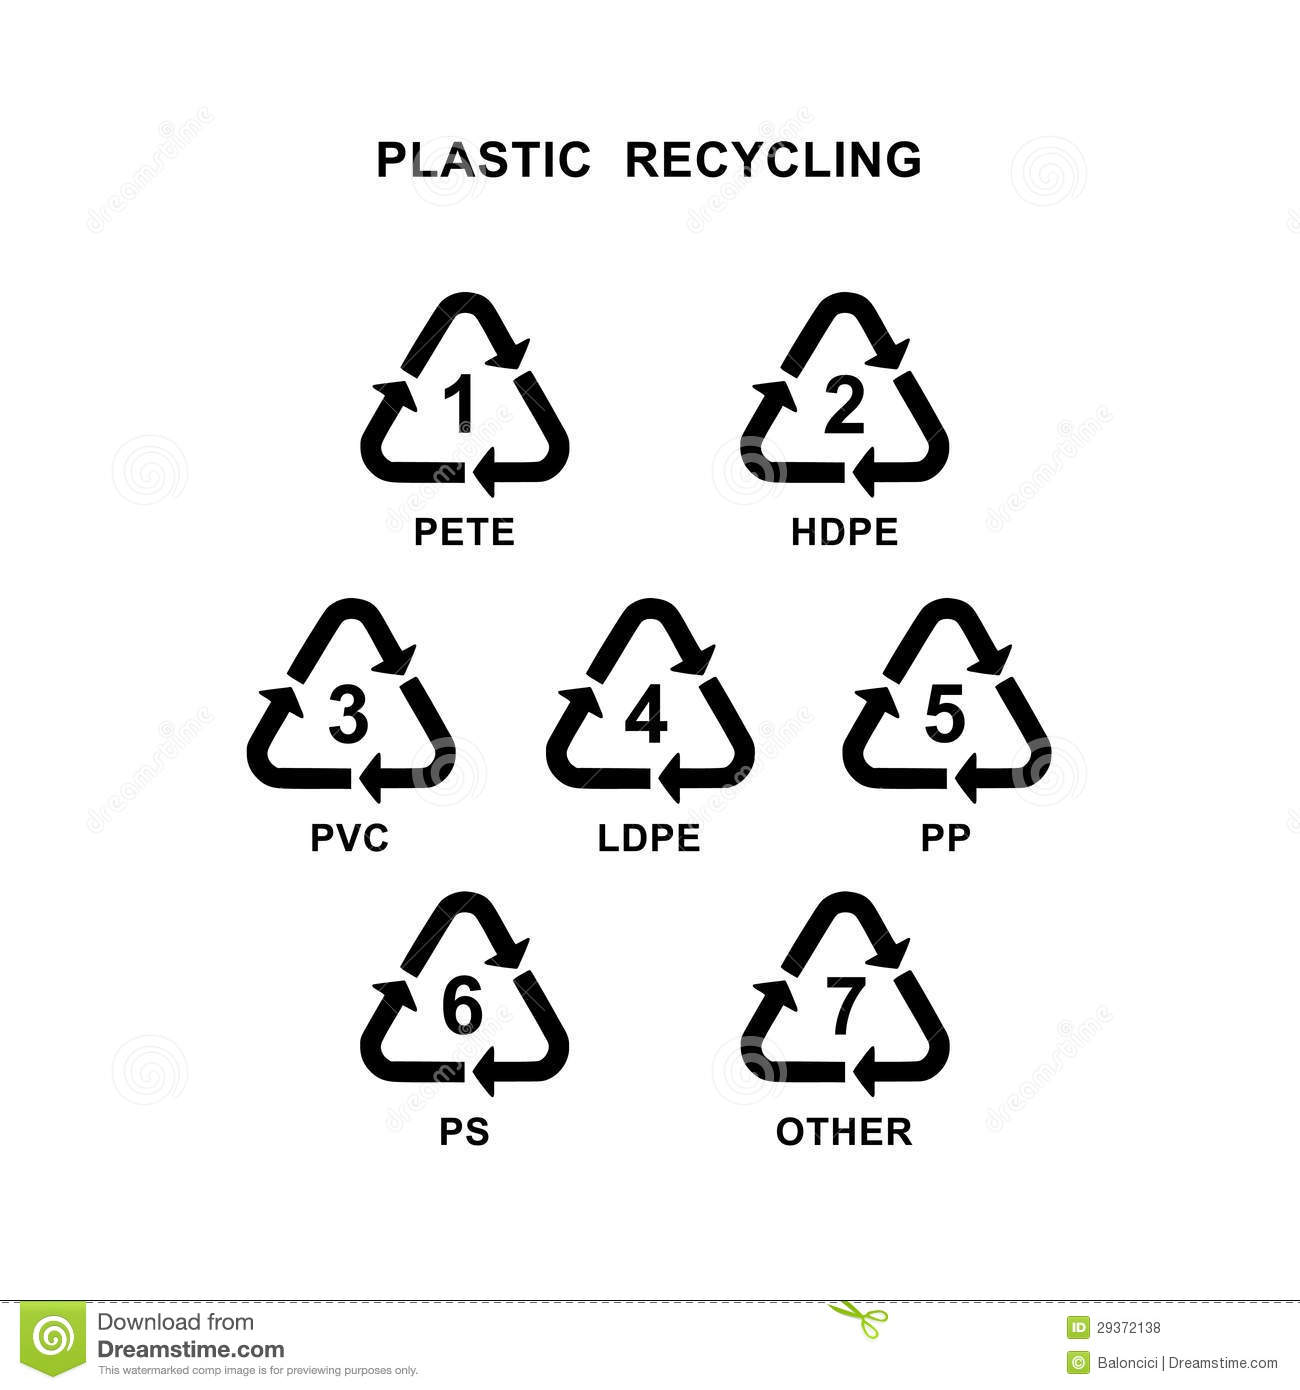 Recycling Plastic Symbol Royalty Free Stock Photos